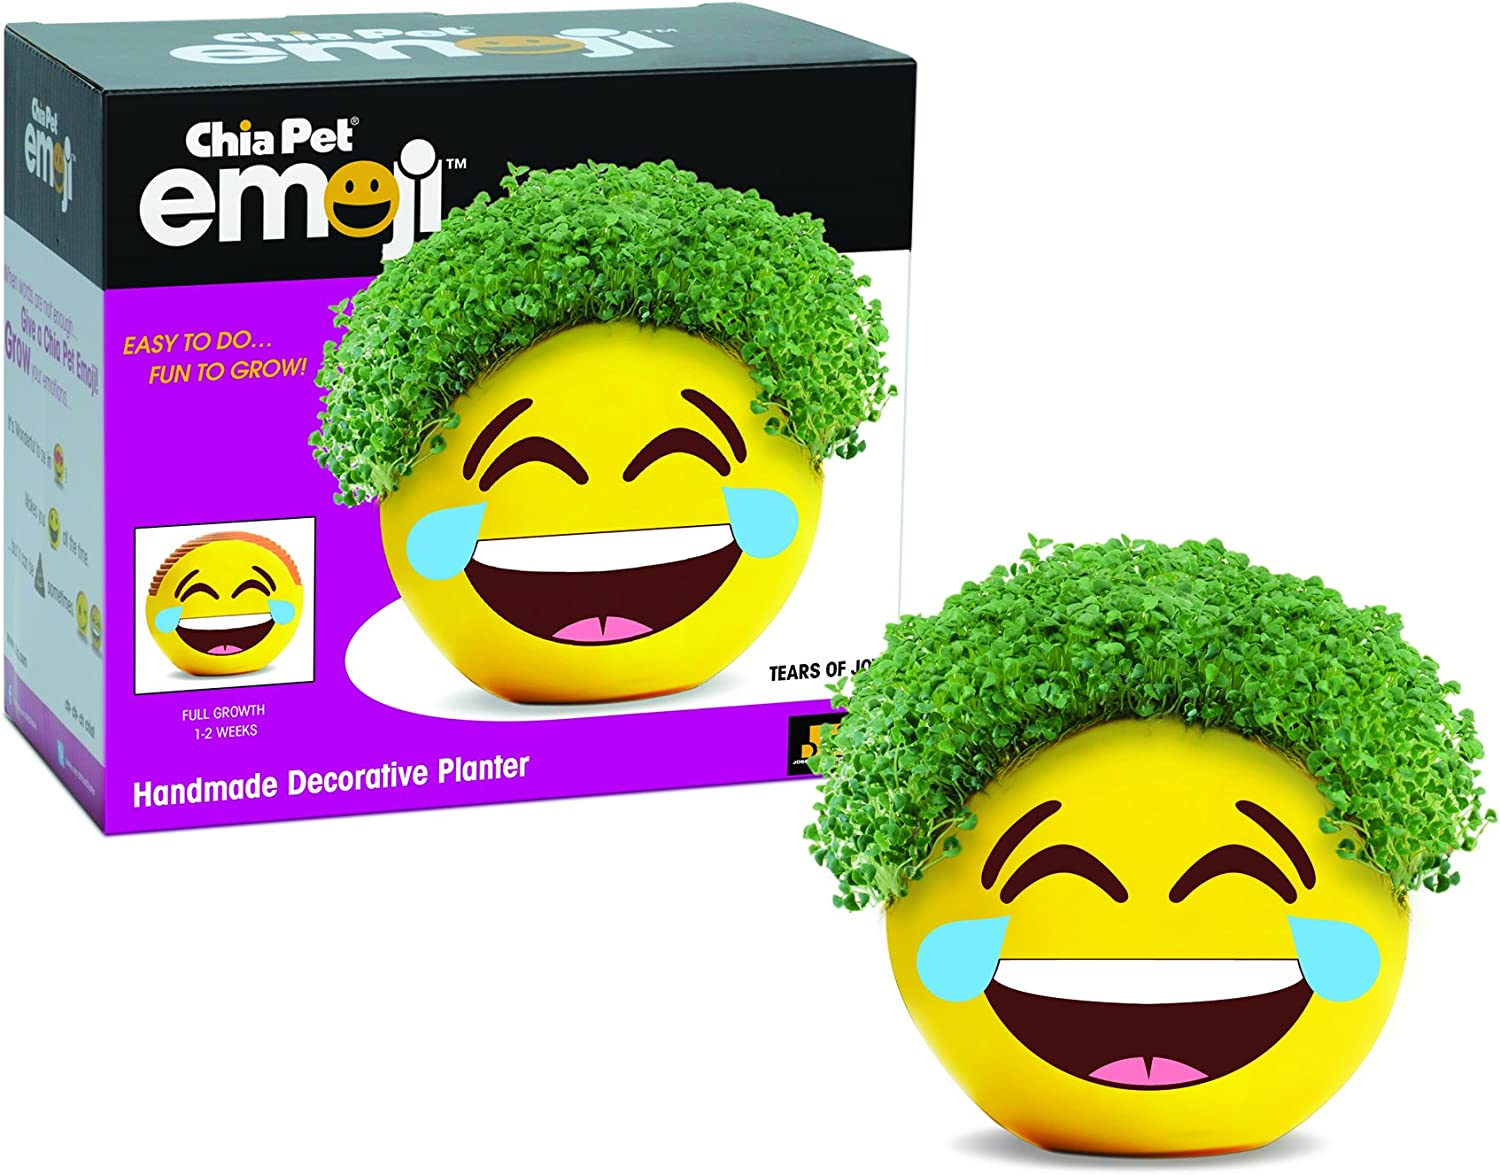 Chia Pet Emoji Tears of Joy, Decorative Pottery Planter, Easy to Do and Fun to Grow, Novelty Gift, Perfect for Any Occasion